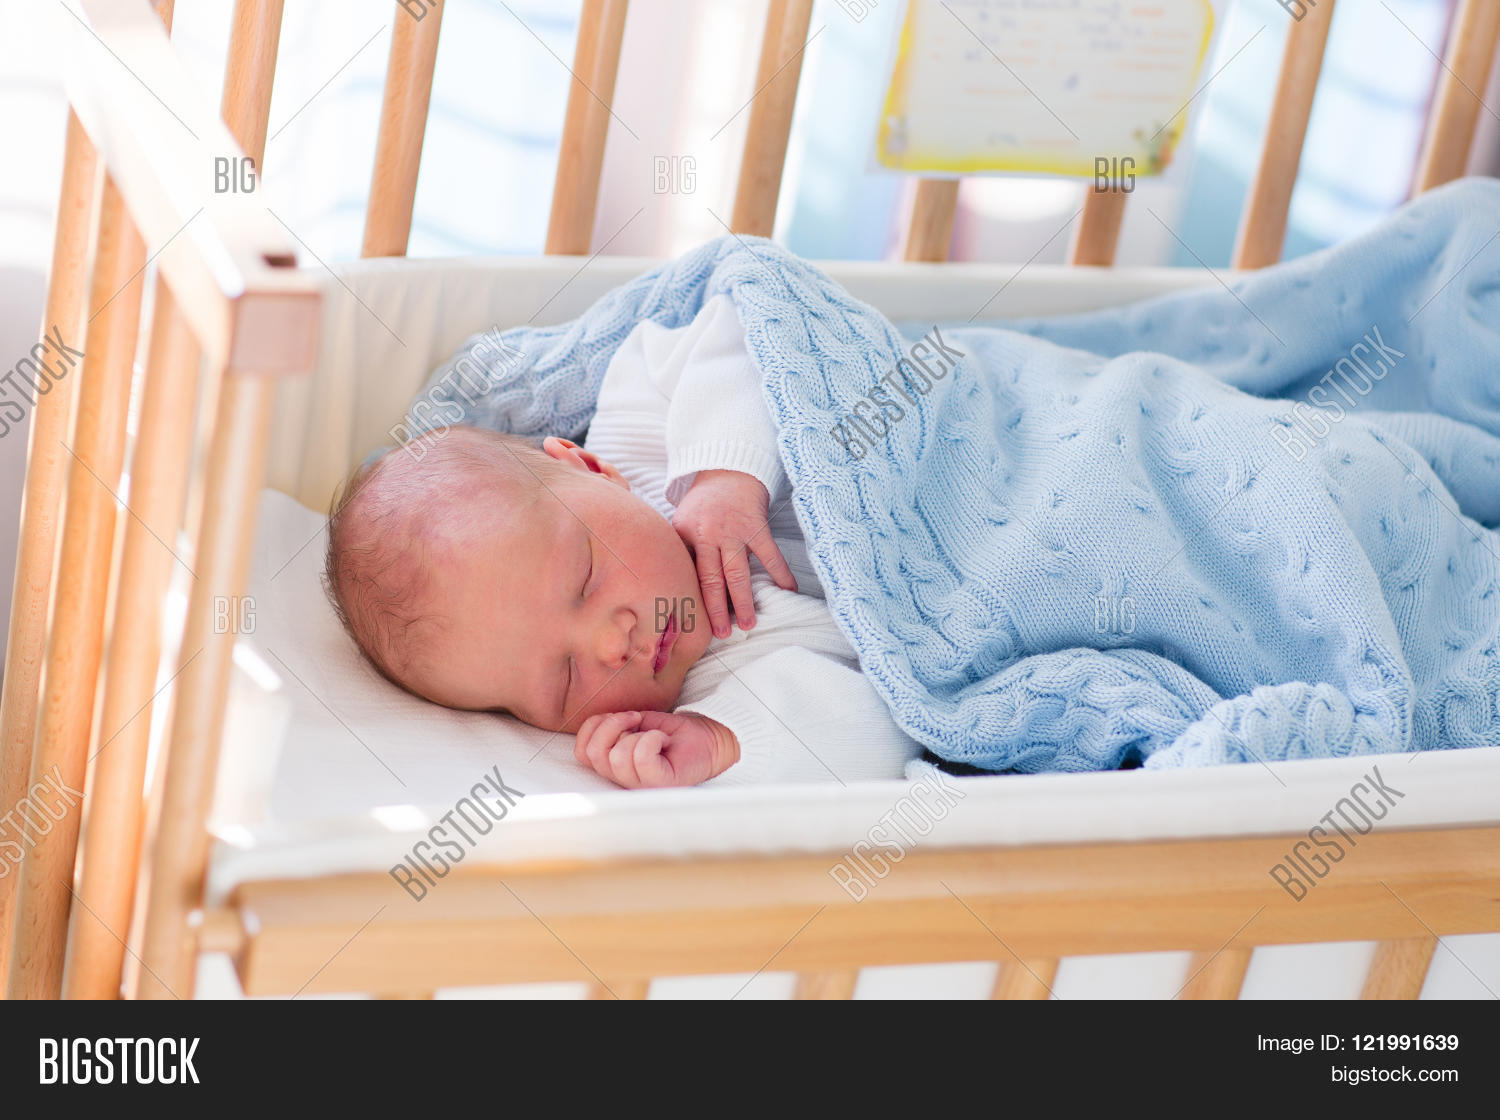 328a2485d65b Newborn Baby Hospital Image   Photo (Free Trial)